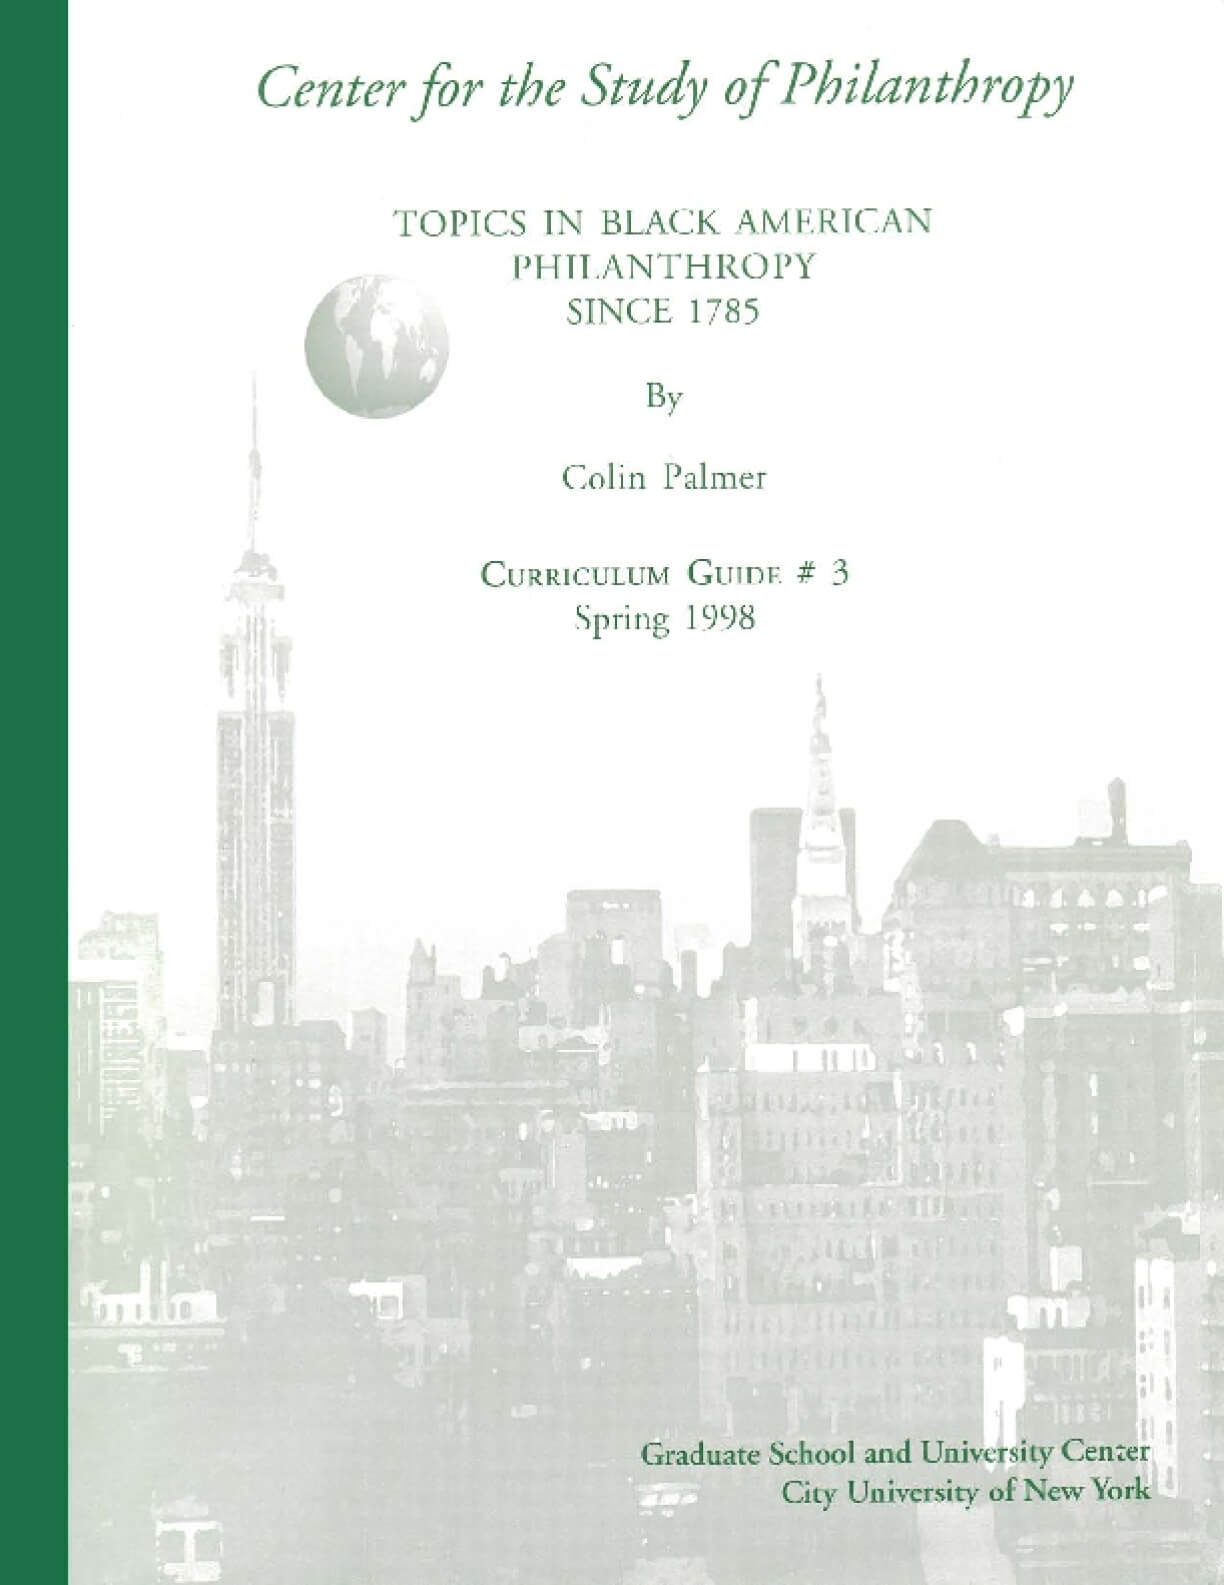 Topics in Black American Philanthropy in the United States Since 1785